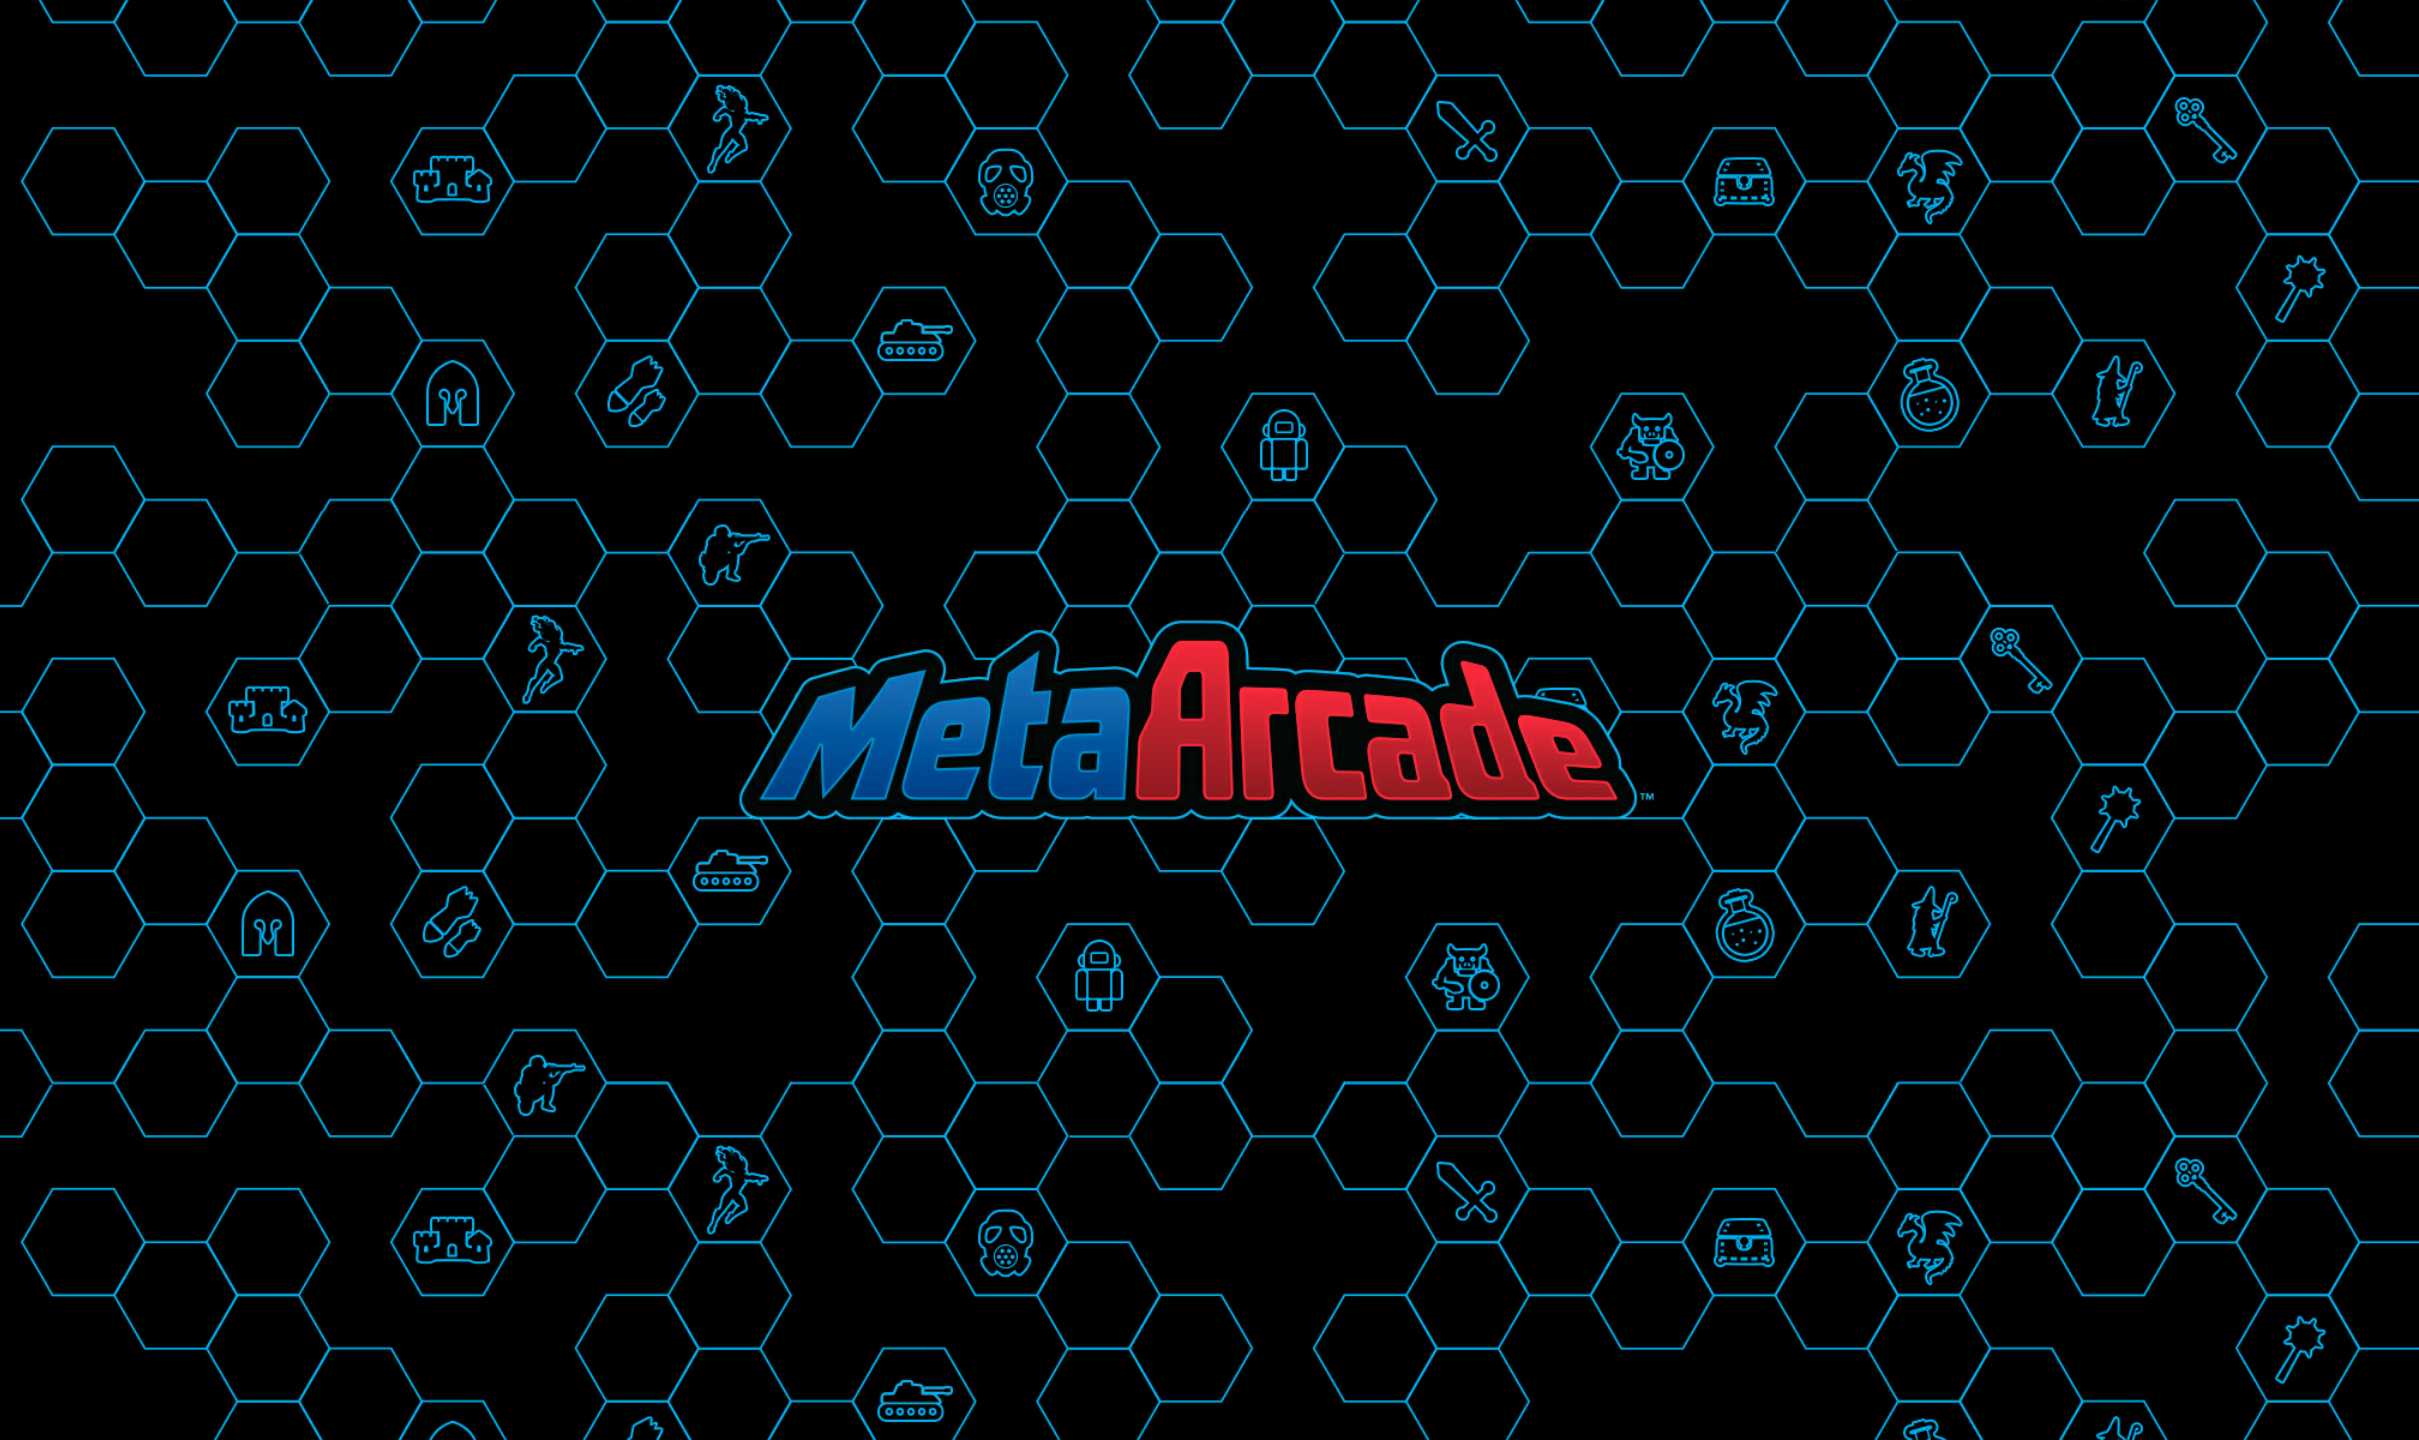 MetaArcade logo from their sneak peak application on android